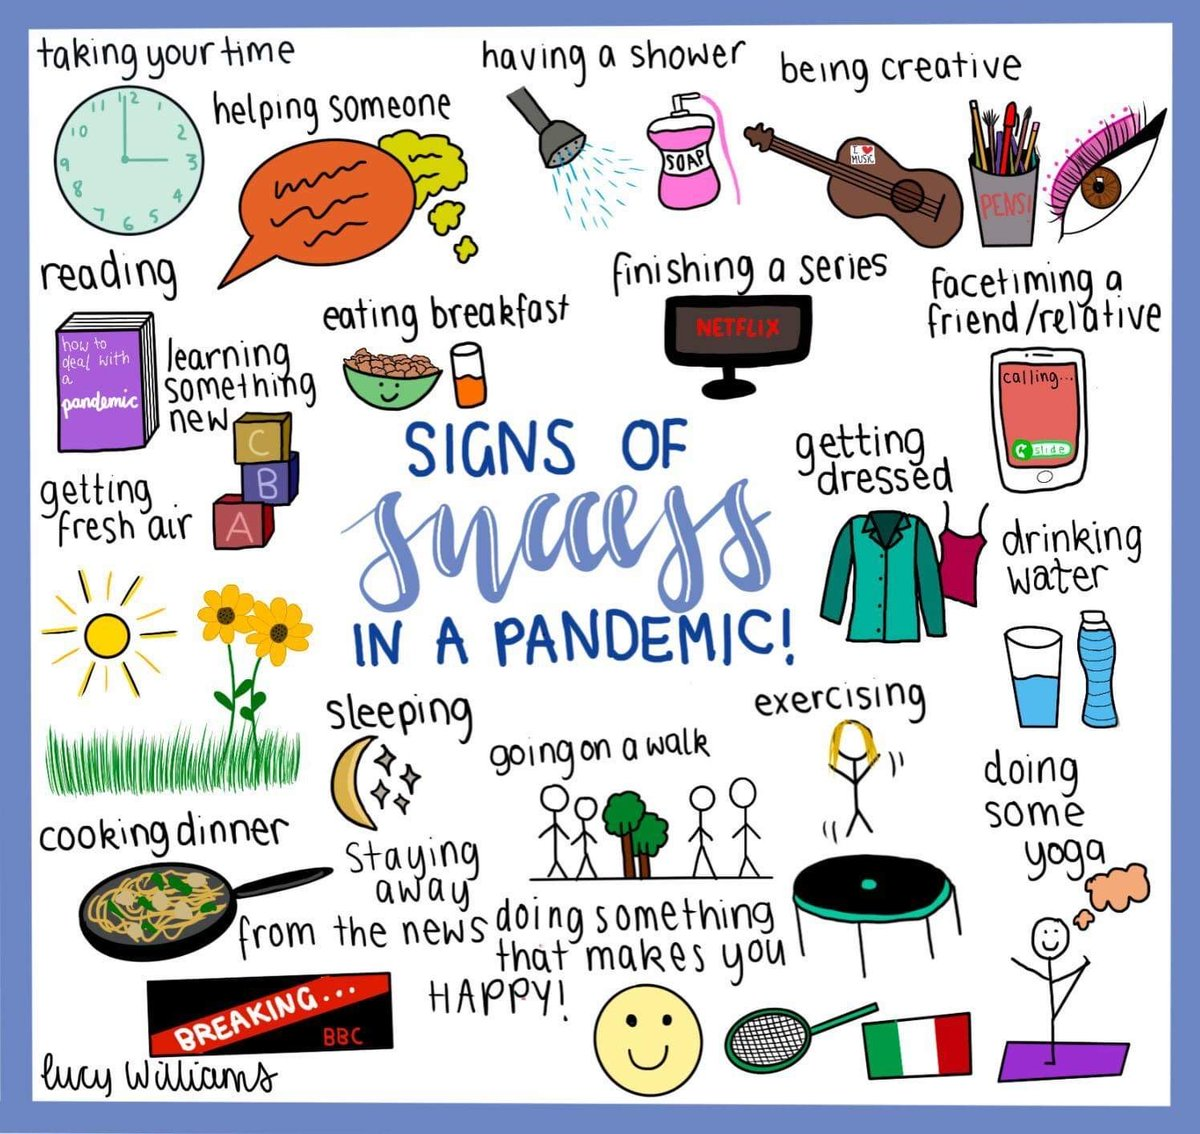 Great advice from Lucy here. Success might look a little different at the moment. Taking care of yourself in small ways every day is important for us all right now #healthylifestyles #selfcare #freshair #exercise #breakfast #creativity #signsofsuccess